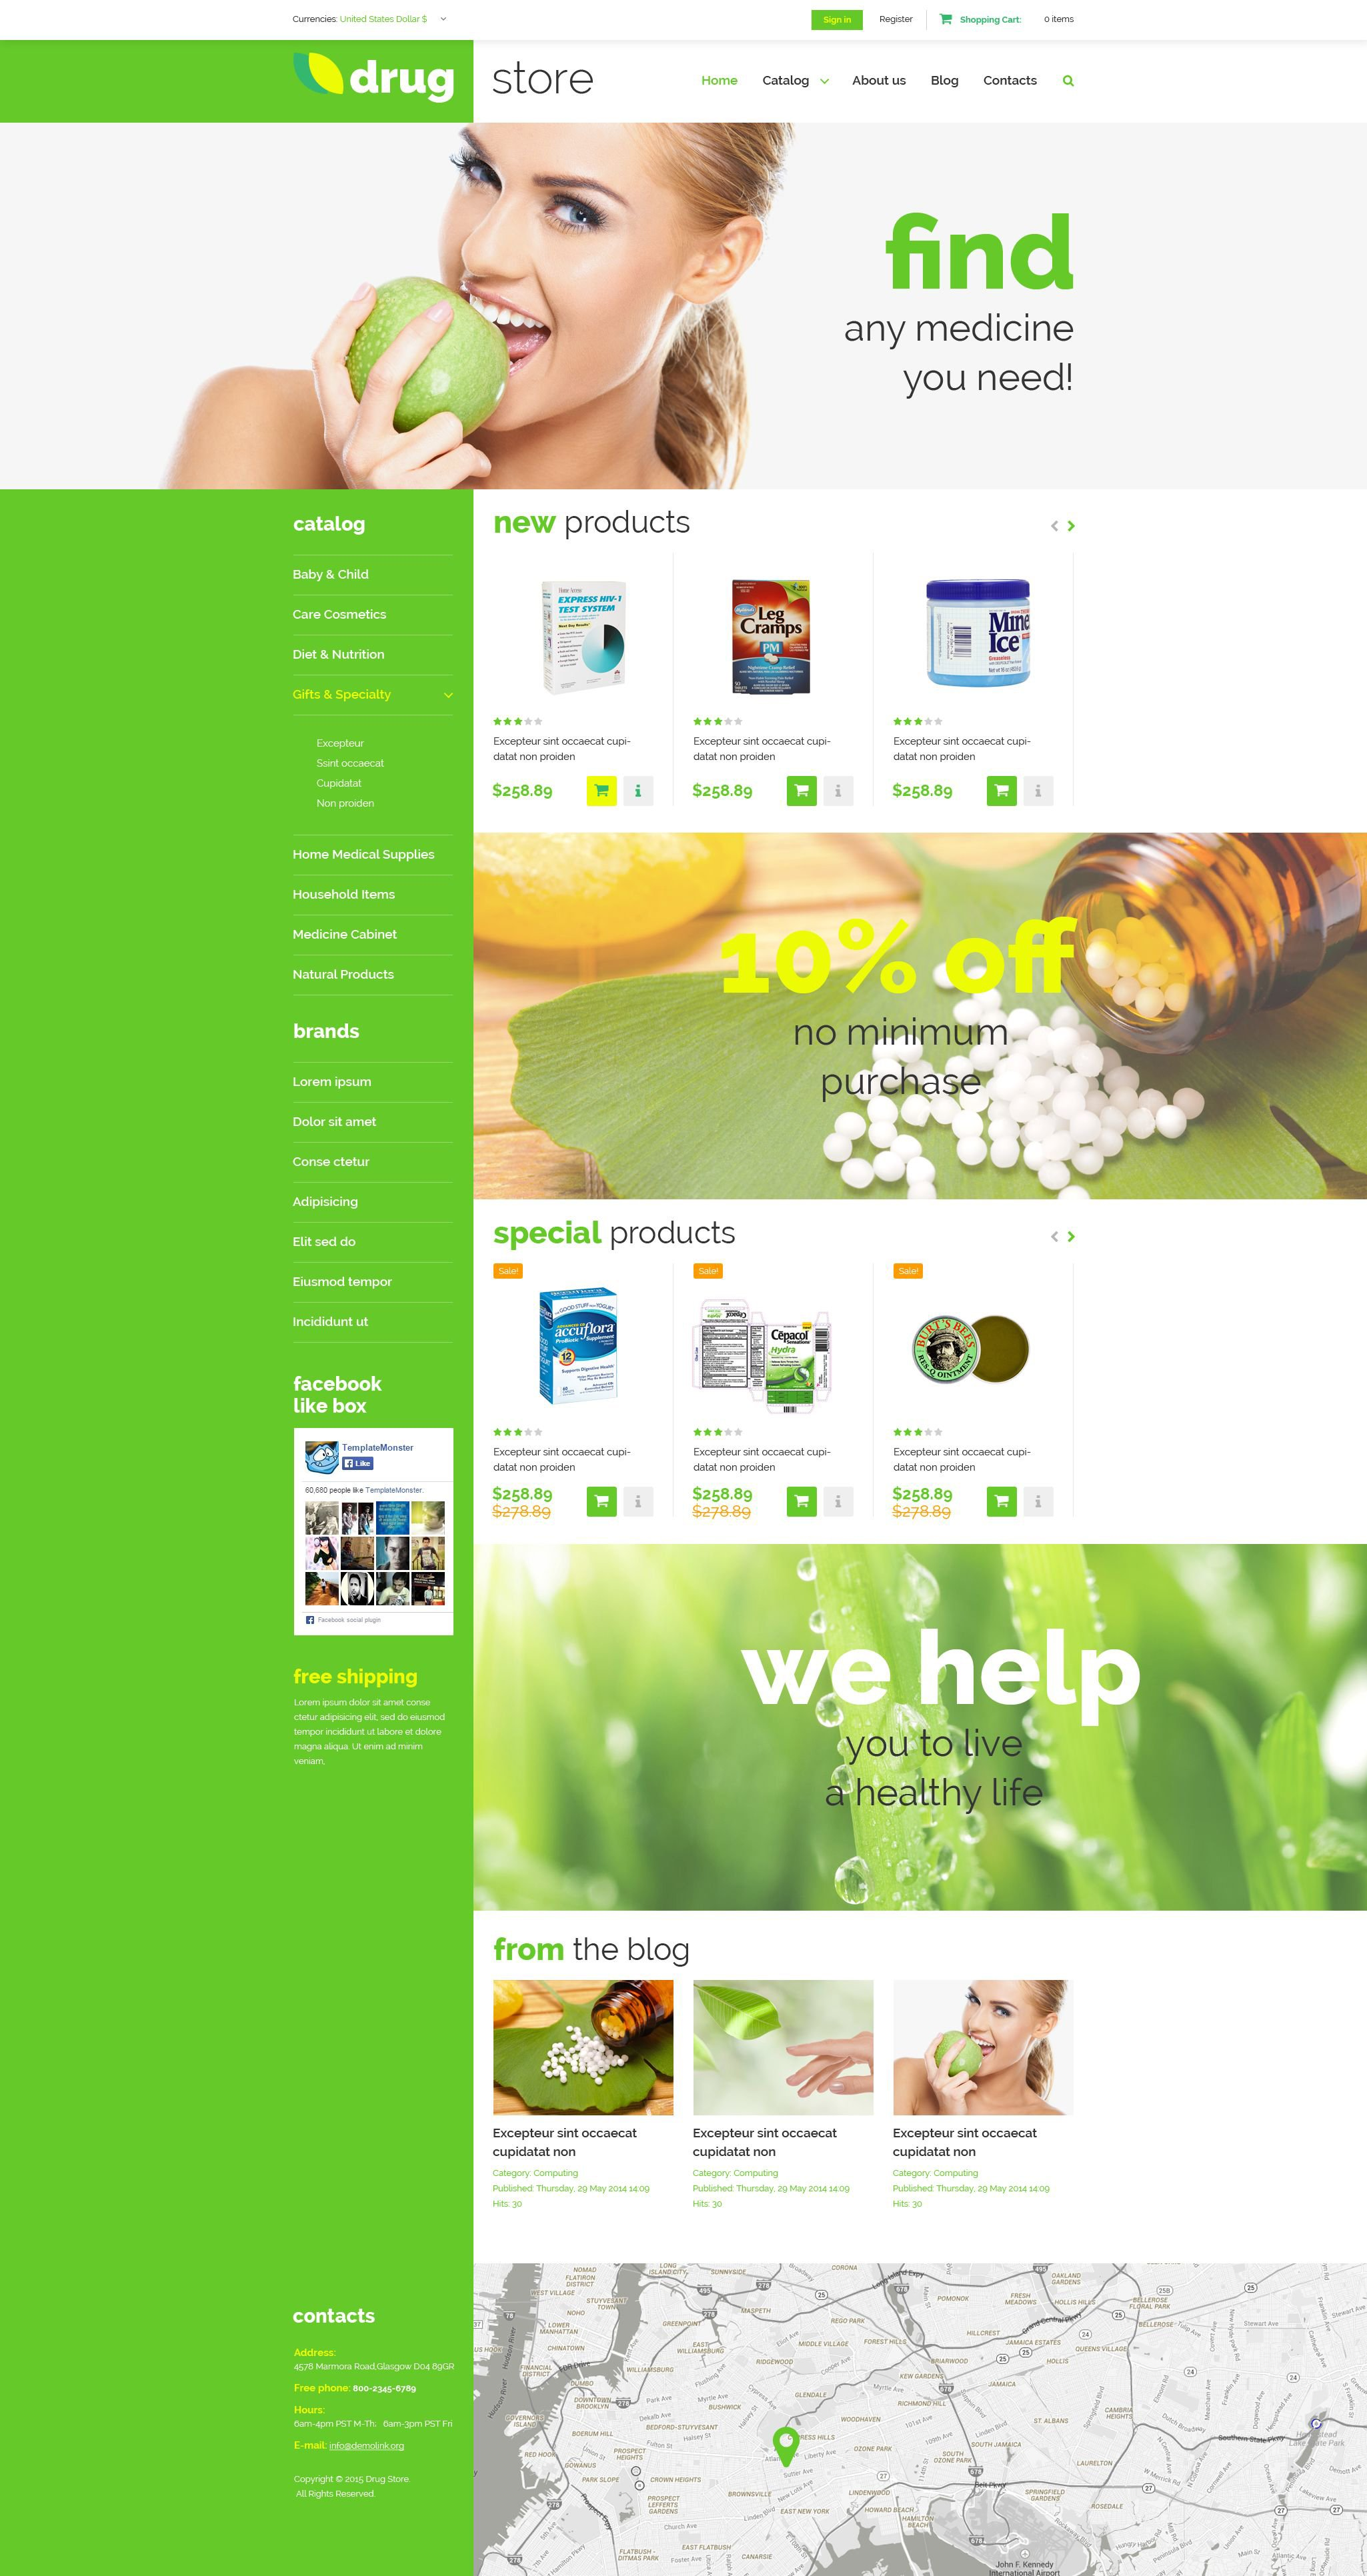 The Drugs Store VirtueMart Design 52955, one of the best VirtueMart templates of its kind (medical, most popular), also known as drugs store VirtueMart template, medicine VirtueMart template, cure VirtueMart template, pills VirtueMart template, tablets VirtueMart template, pharmacy VirtueMart template, online disease VirtueMart template, medical care VirtueMart template, capsules VirtueMart template, ointment VirtueMart template, medicare VirtueMart template, prescription VirtueMart template, vitamins VirtueMart template, medicaments VirtueMart template, medical supplies VirtueMart template, medicines VirtueMart template, supplements VirtueMart template, healthy and related with drugs store, medicine, cure, pills, tablets, pharmacy, online disease, medical care, capsules, ointment, medicare, prescription, vitamins, medicaments, medical supplies, medicines, supplements, healthy, etc.